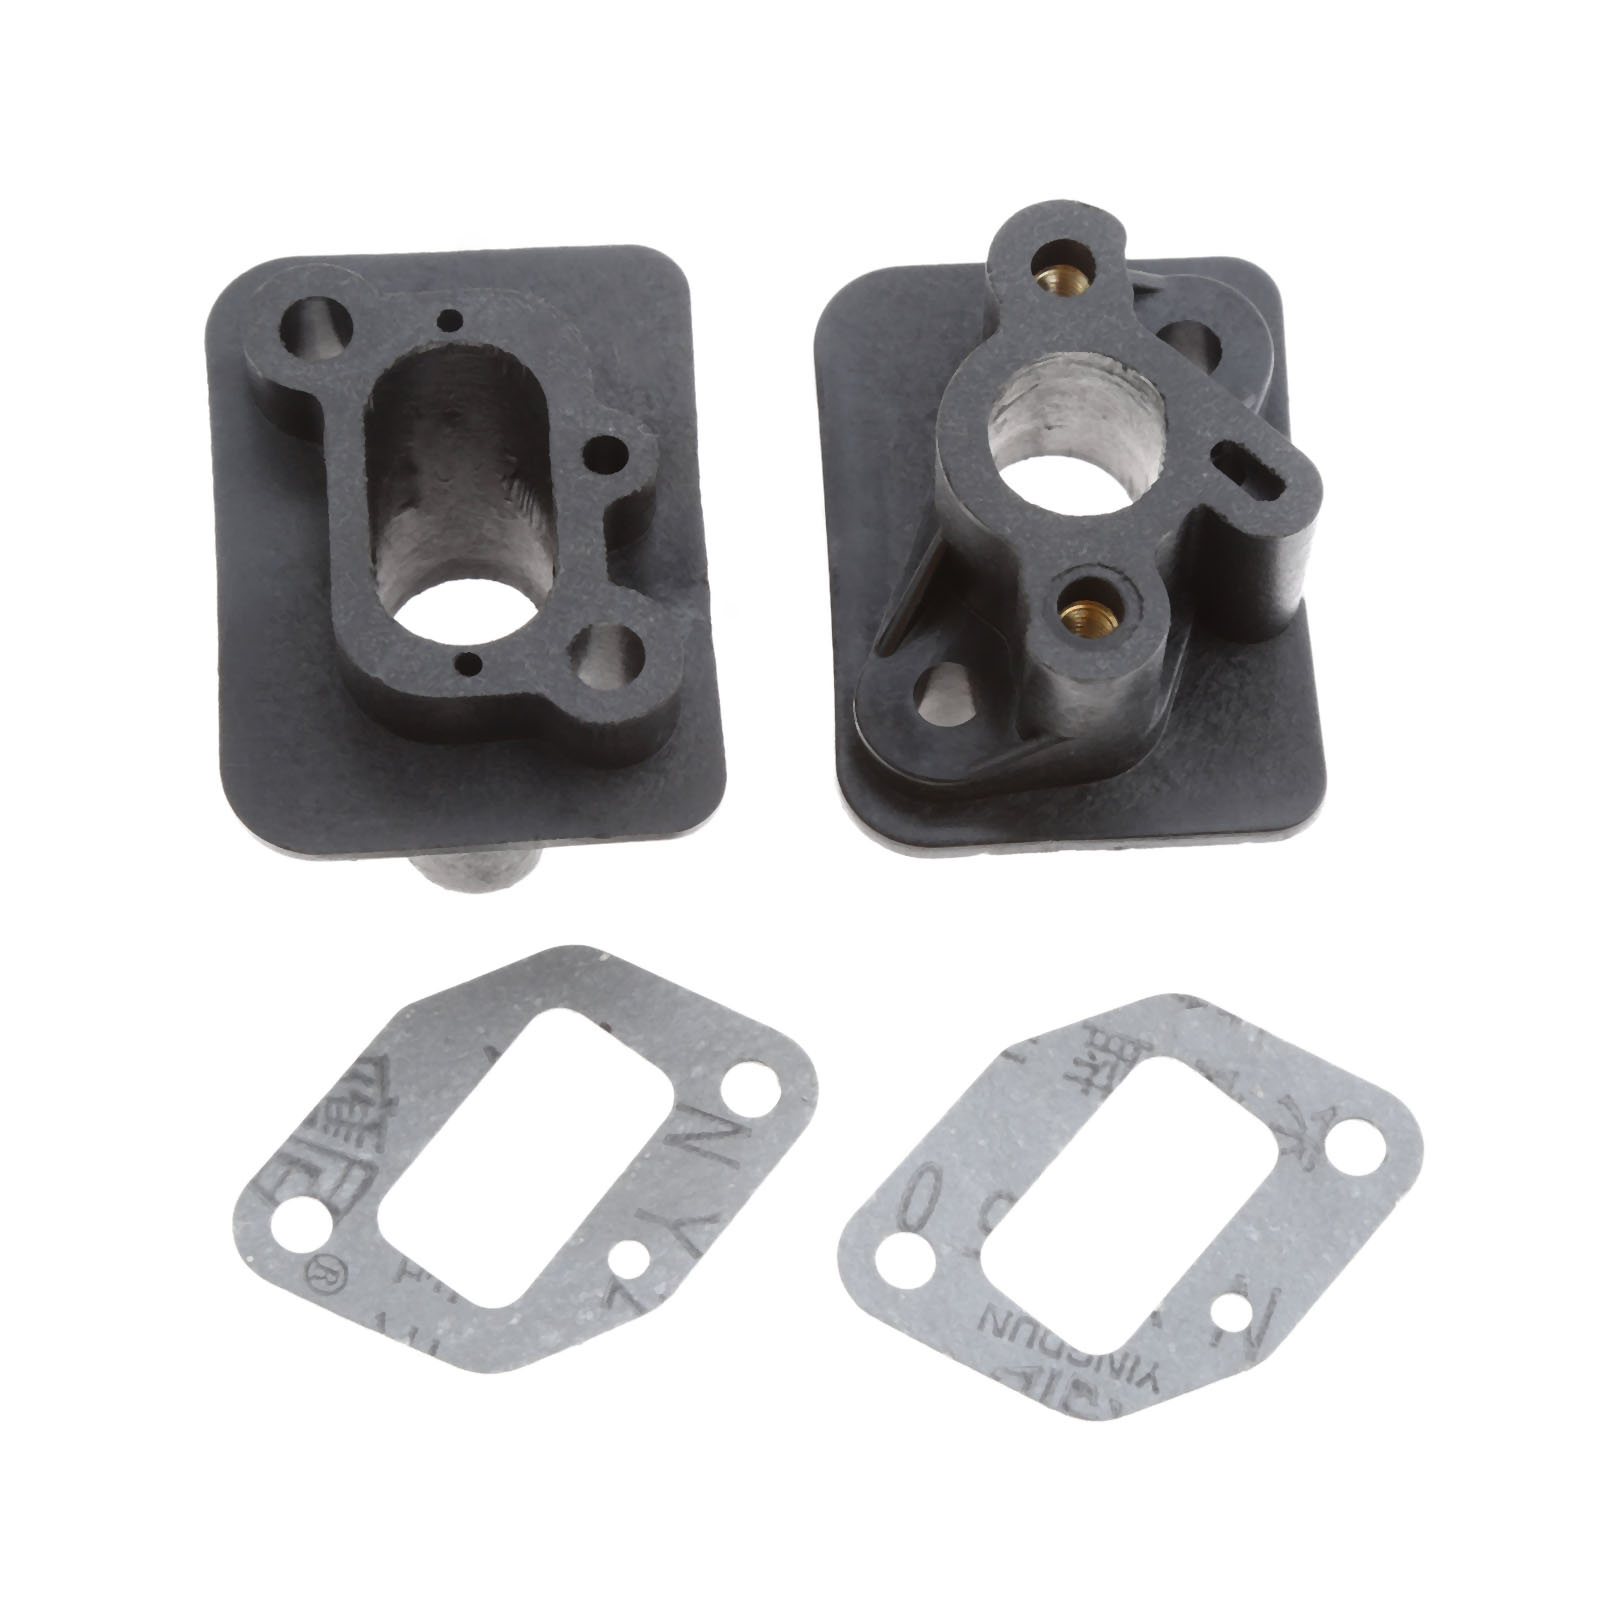 DRELD 2Sets Manifold With Gasket For 1E40F-5 44F-5 BC430 CG430 CG520 43CC 52CC Brush Cutter Grass Trimmer Spare Part Garden Tool